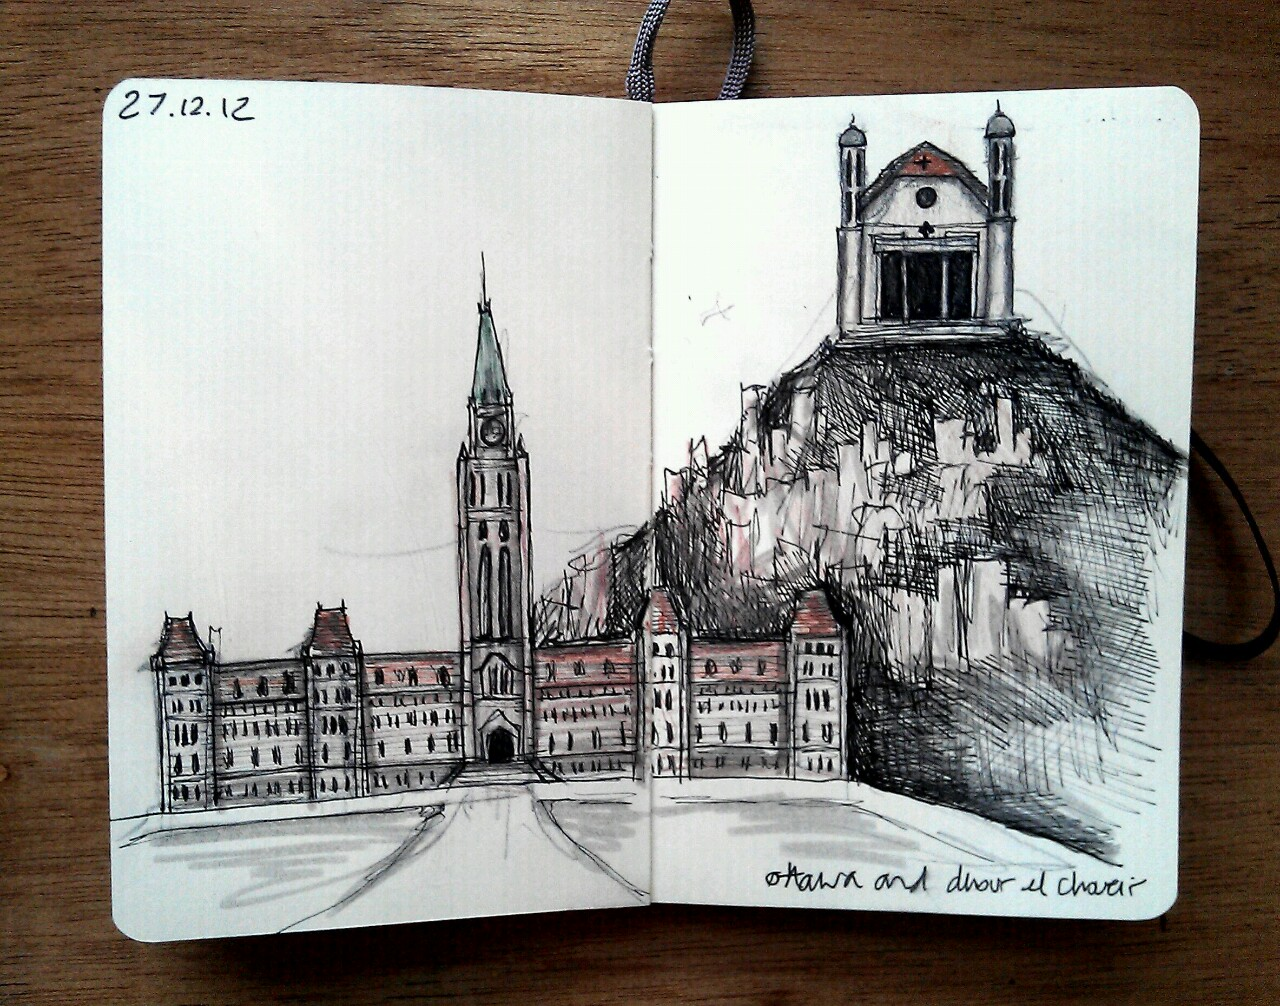 365 drawings later … day 331 … ottawa and dhour el choueir [I asked my mum what her favourite building is and her answer was the parliament in ottawa and the catholic church in dhour el choueir, lebanon]